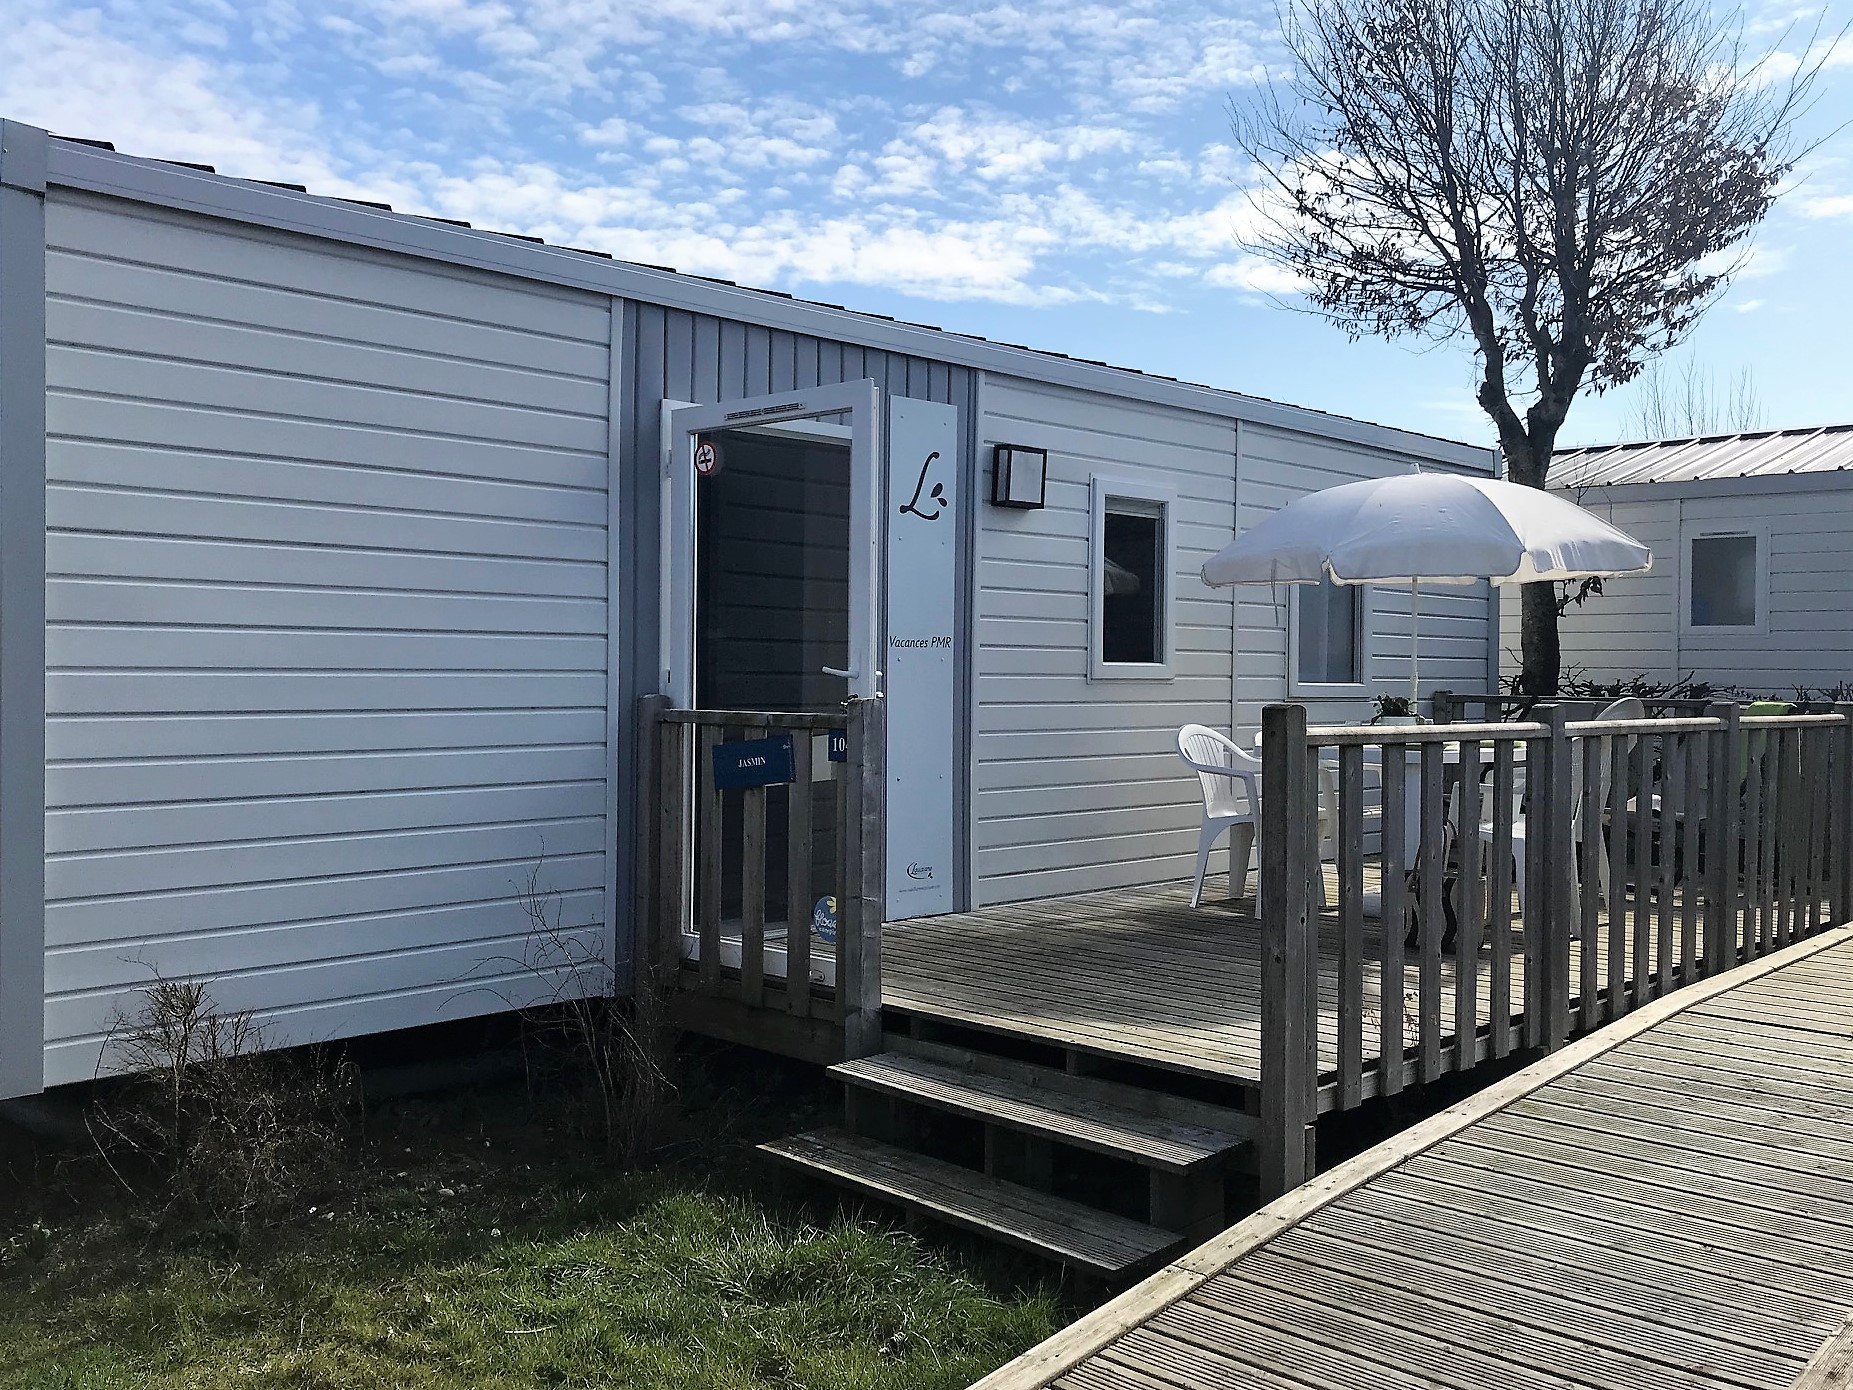 Mobile-Home 30M² Comfort+ (2 Bedrooms)  - Adapted To The People With Reduced Mobility